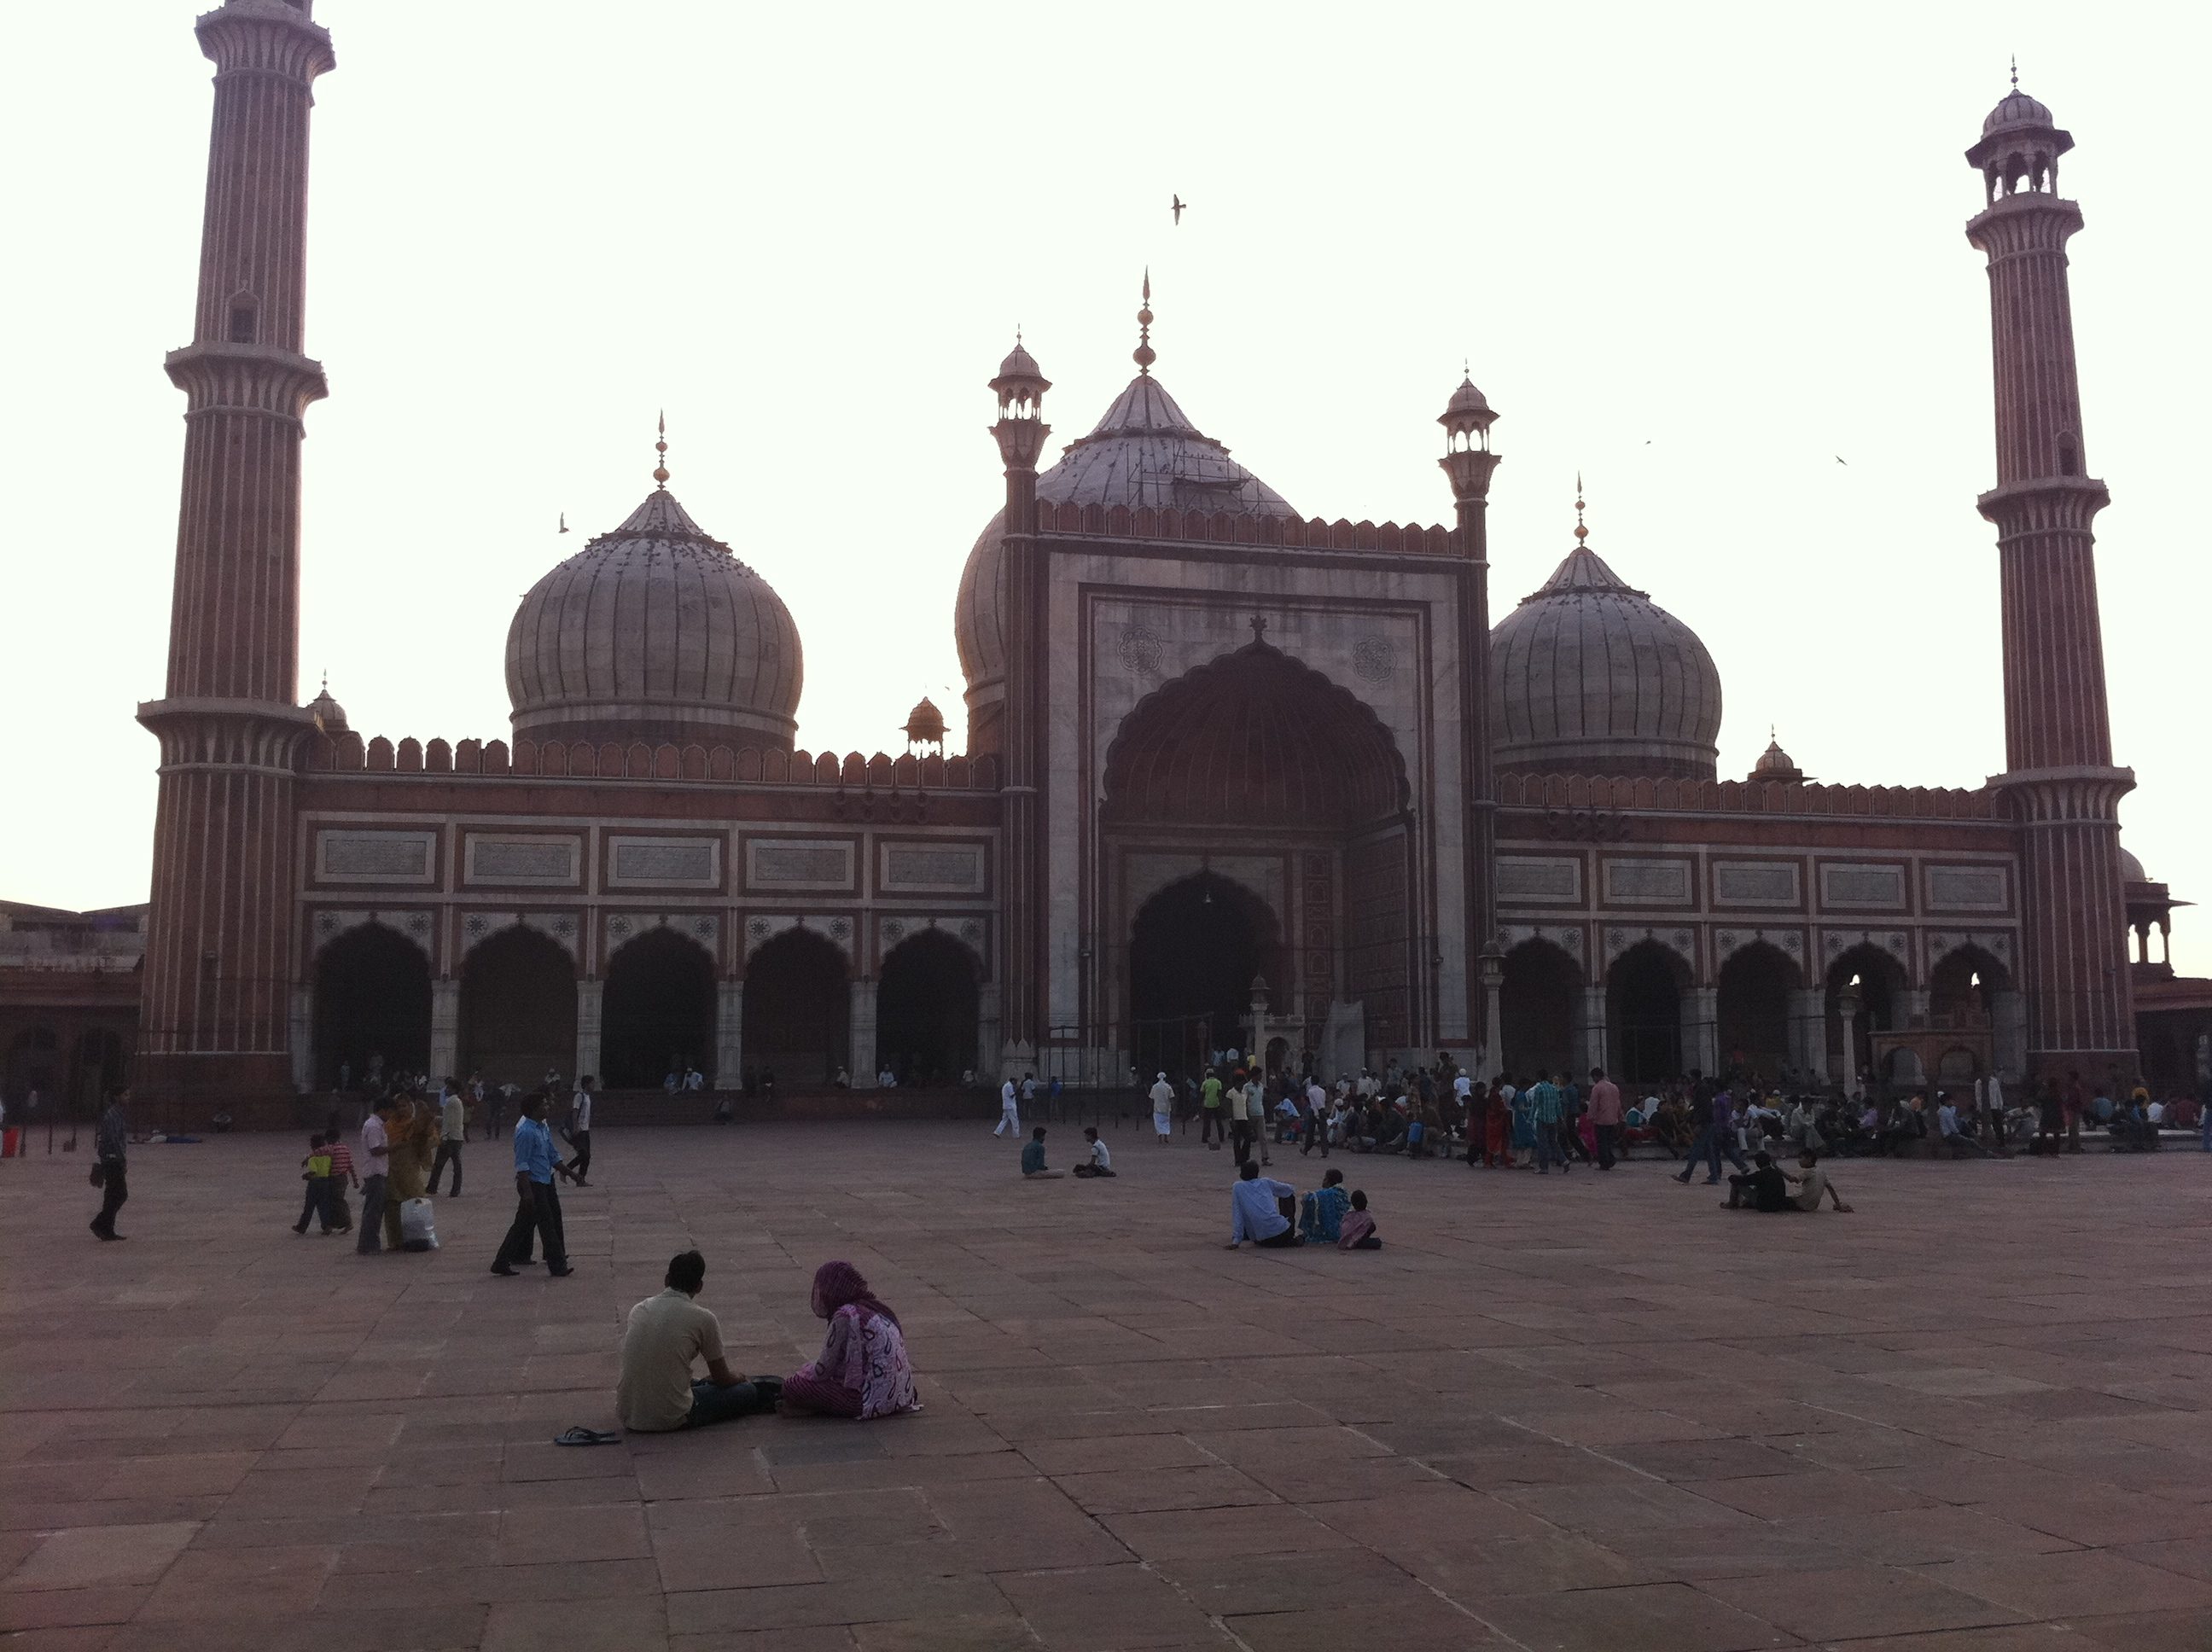 Jama Masjid Mosque in New Delhi, India